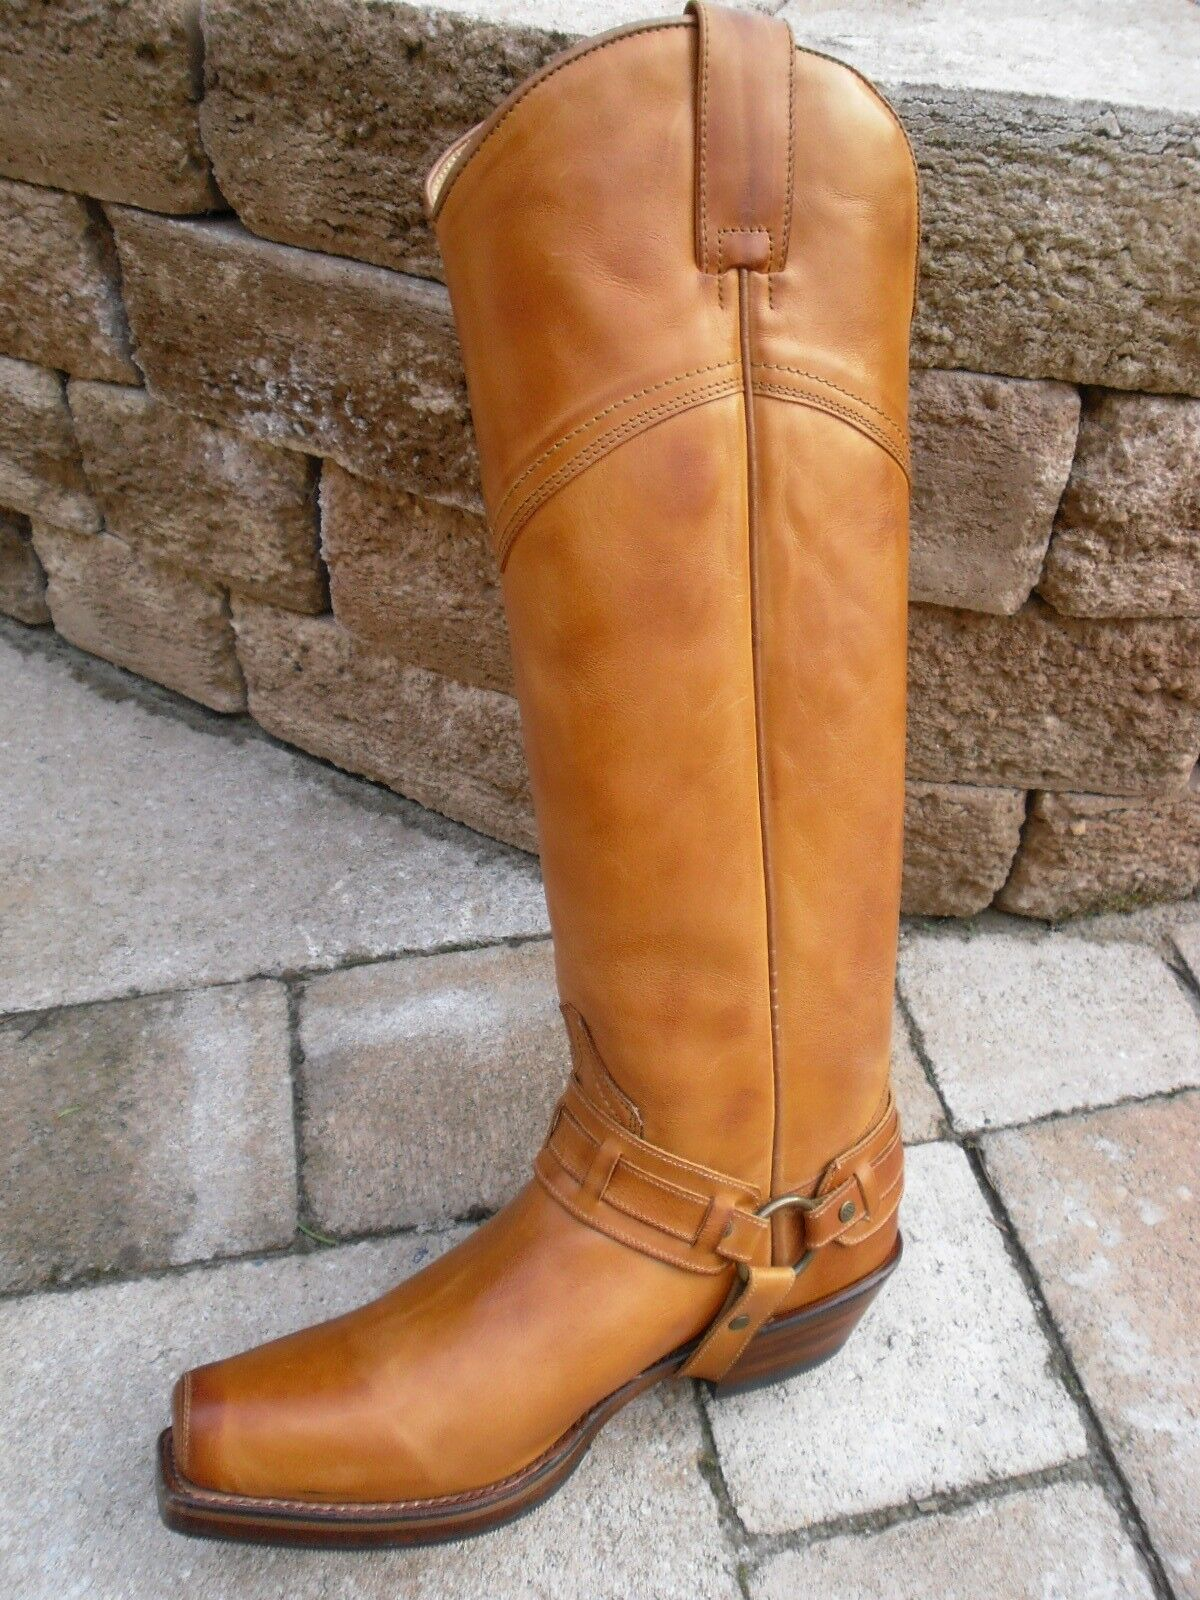 Sendra Offizierstiefel 7871 7871 7871 Snowbut MS 048 Conac Good Year Welted Gr.7 = 40-40,5 4e46bd